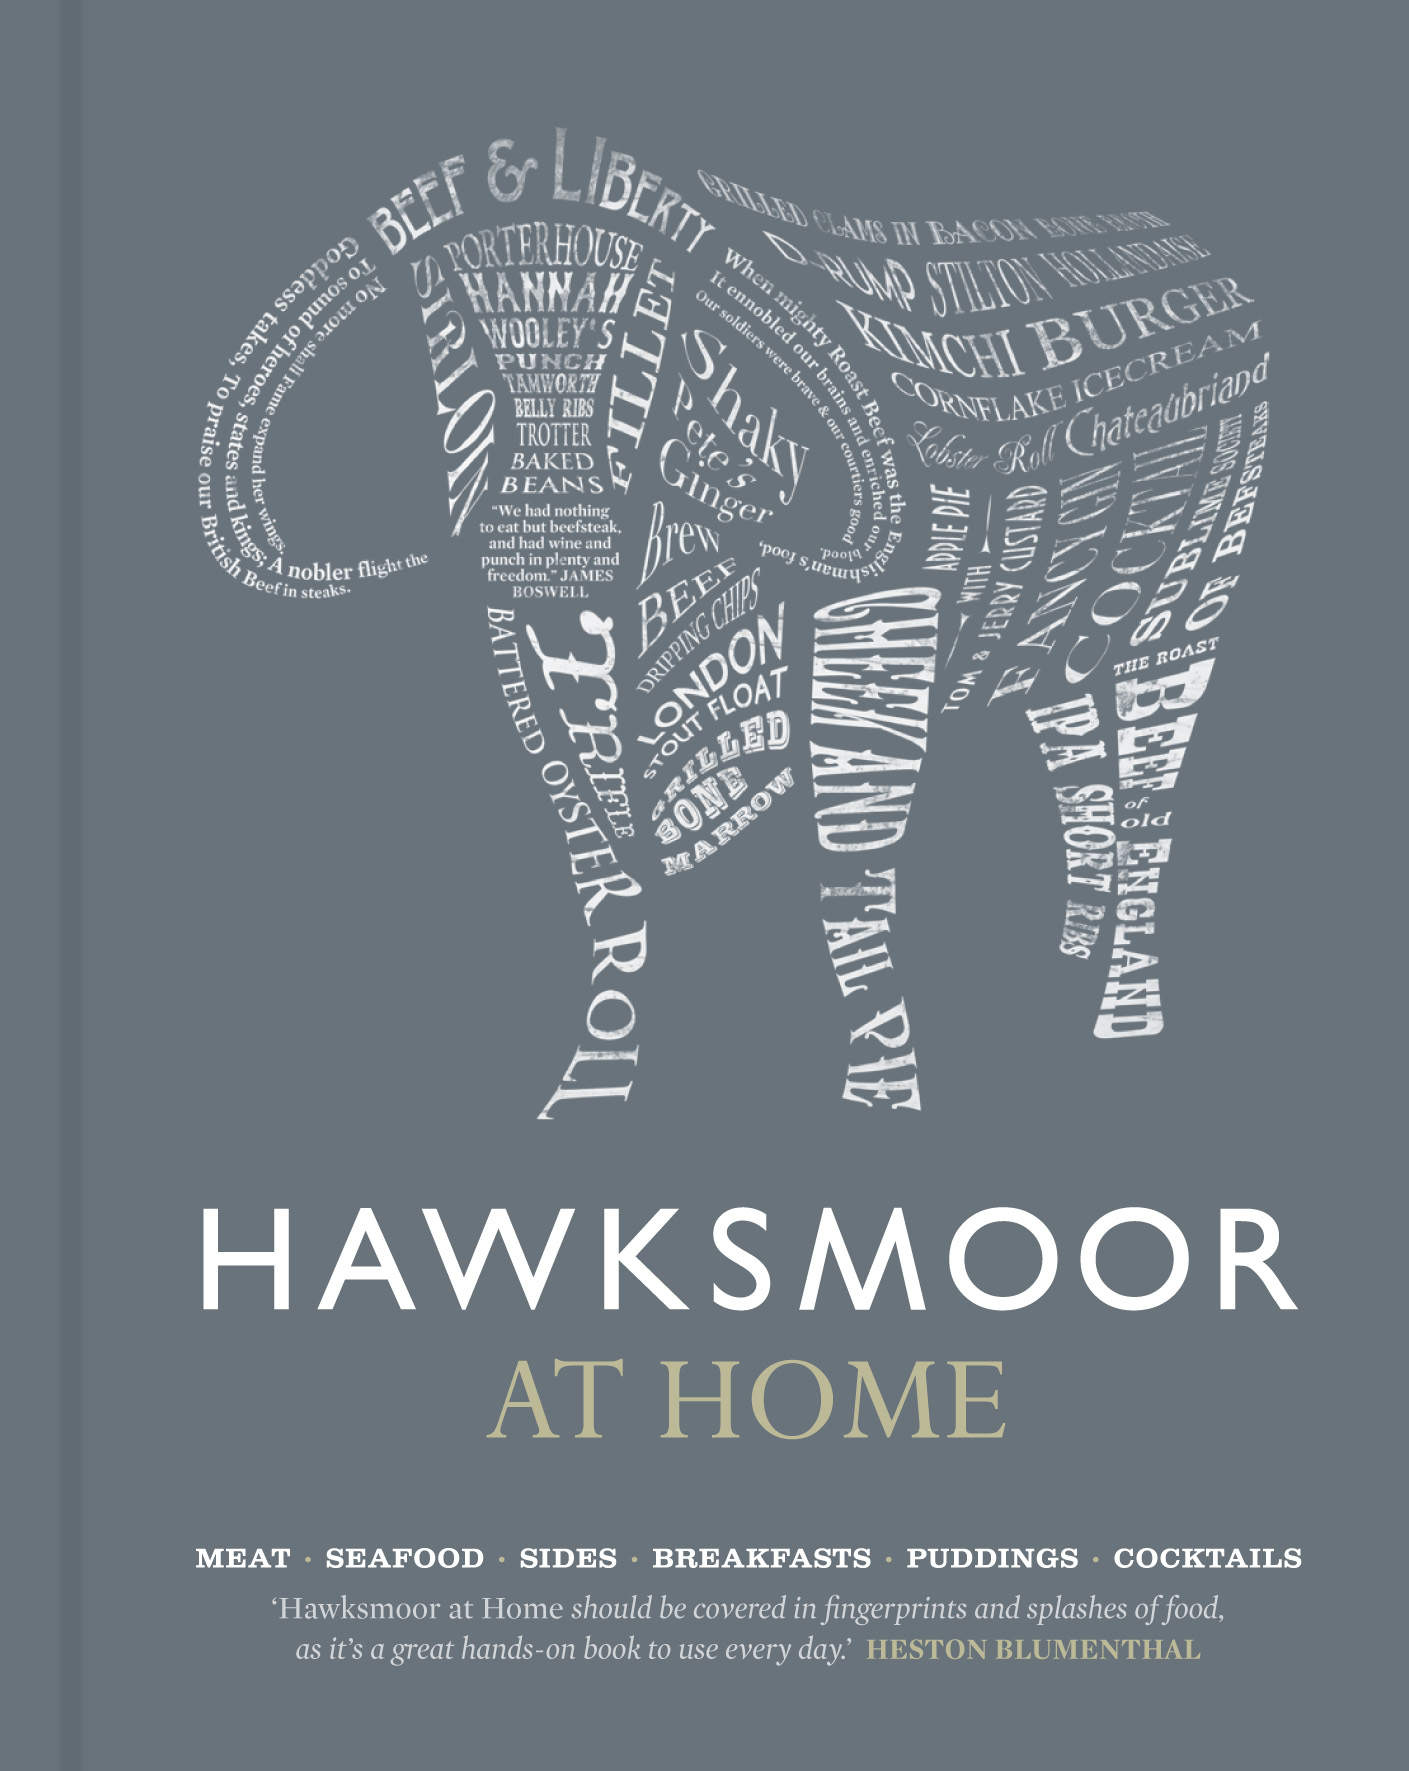 Hawksmoor at Home: Meat - Seafood - Sides - Breakfasts - Puddings - Cocktails